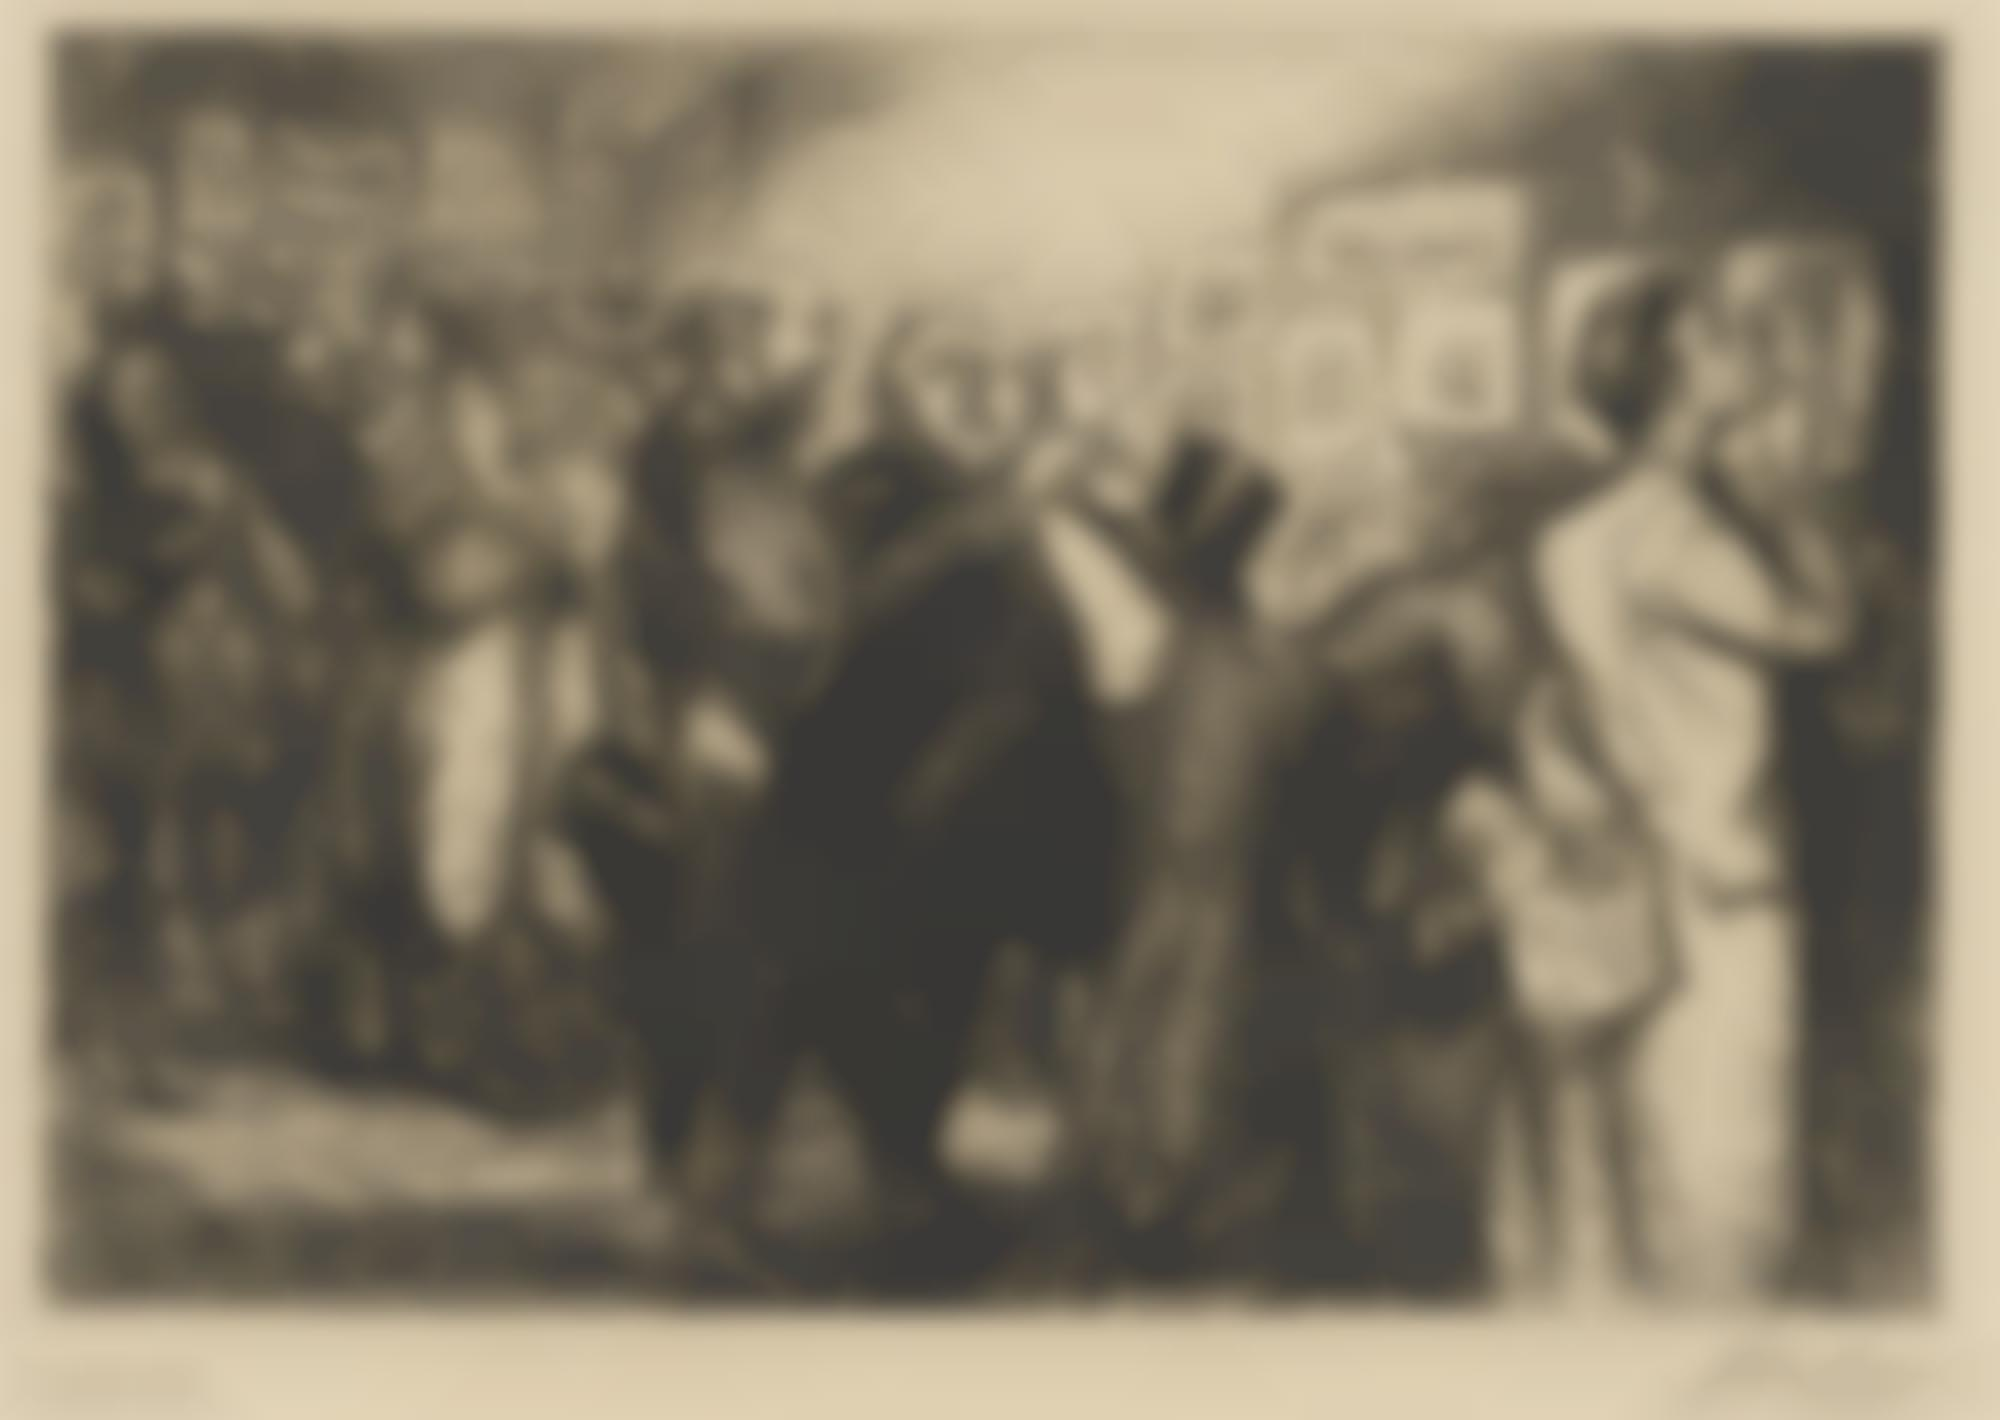 John Sloan-New York City Life (Including: Connoisseurs of Prints (M. 127); Fifth Avenue Critics (M. 128); The Show Case (M. 129); Man Monkey (M. 130); Fun, One Cent (M. 131); Women's Page (M. 132); Turning Out the Light (M. 134); Man, Wife and Child (M. 135); Roofs, Summer Night (M. 137); The Little Bride (M. 138); Girl and Beggar (M. 150); Night Windows (M. 152); Picture Buyer (M. 153))-1911